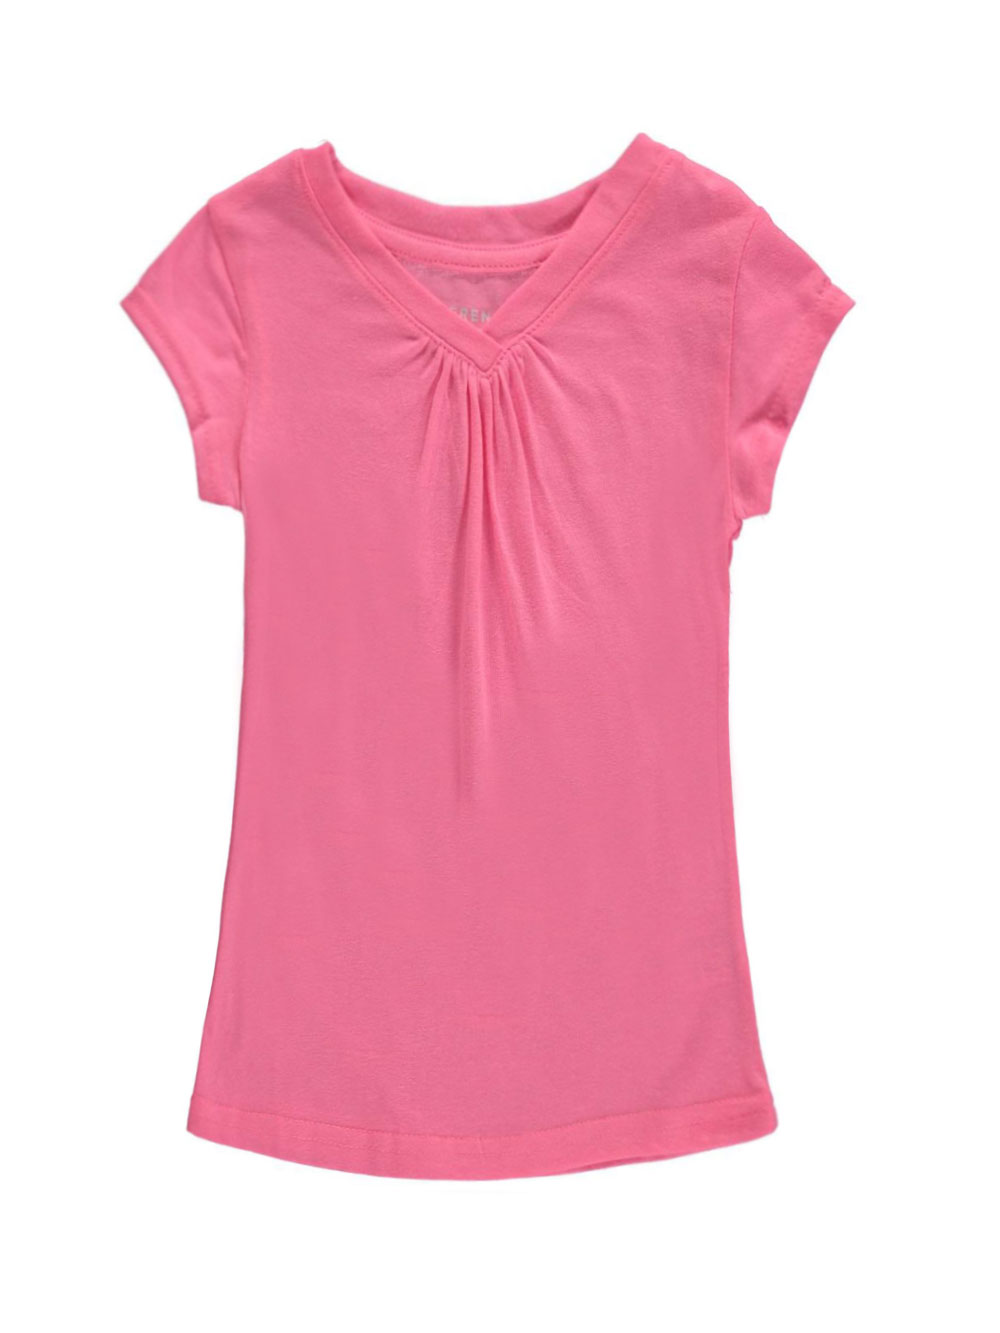 Image of French Toast Little Girls Toddler Ruched VNeck TShirt Sizes 2T  4T  pink 2t